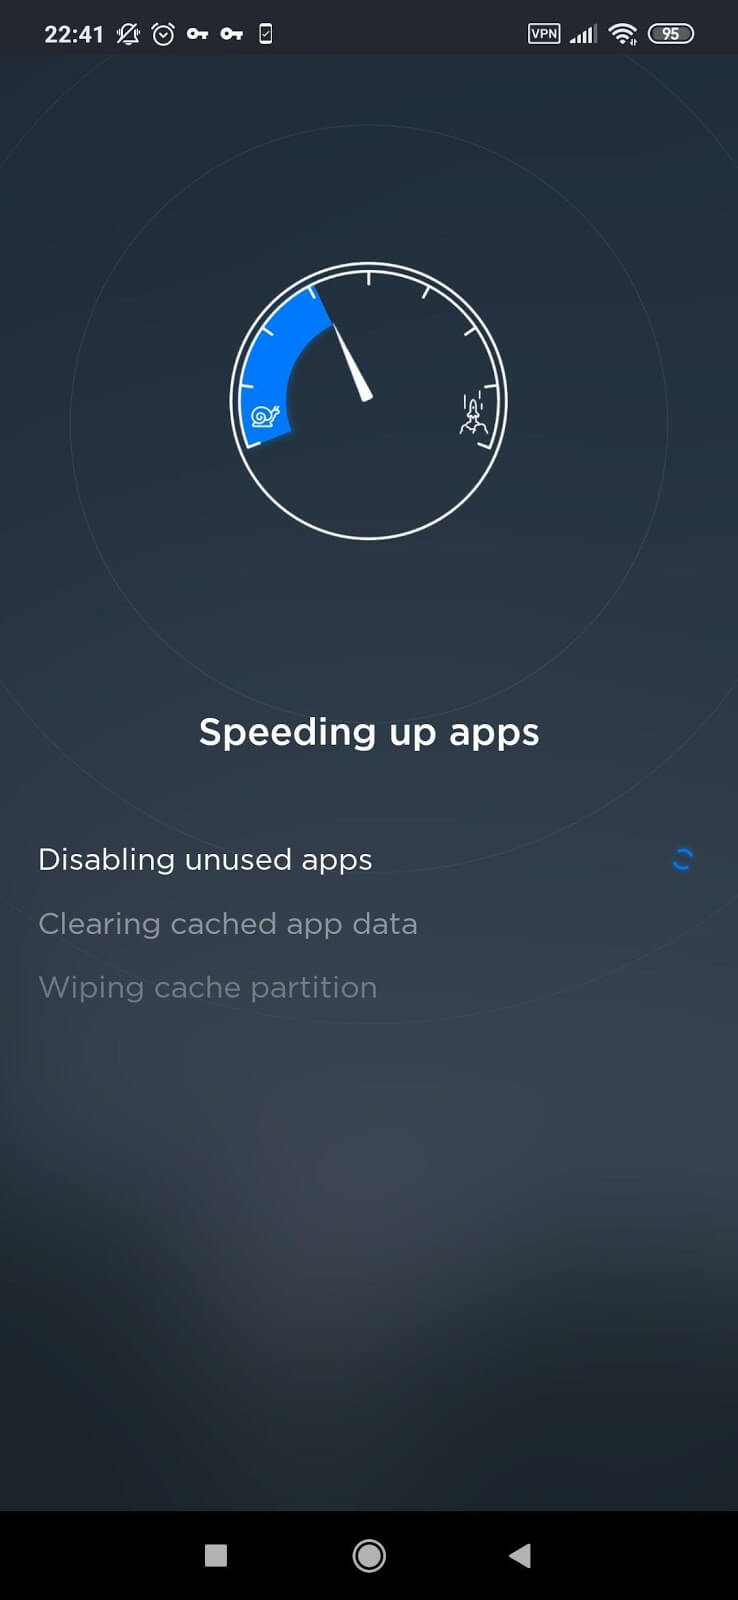 TouchVPN App Speed